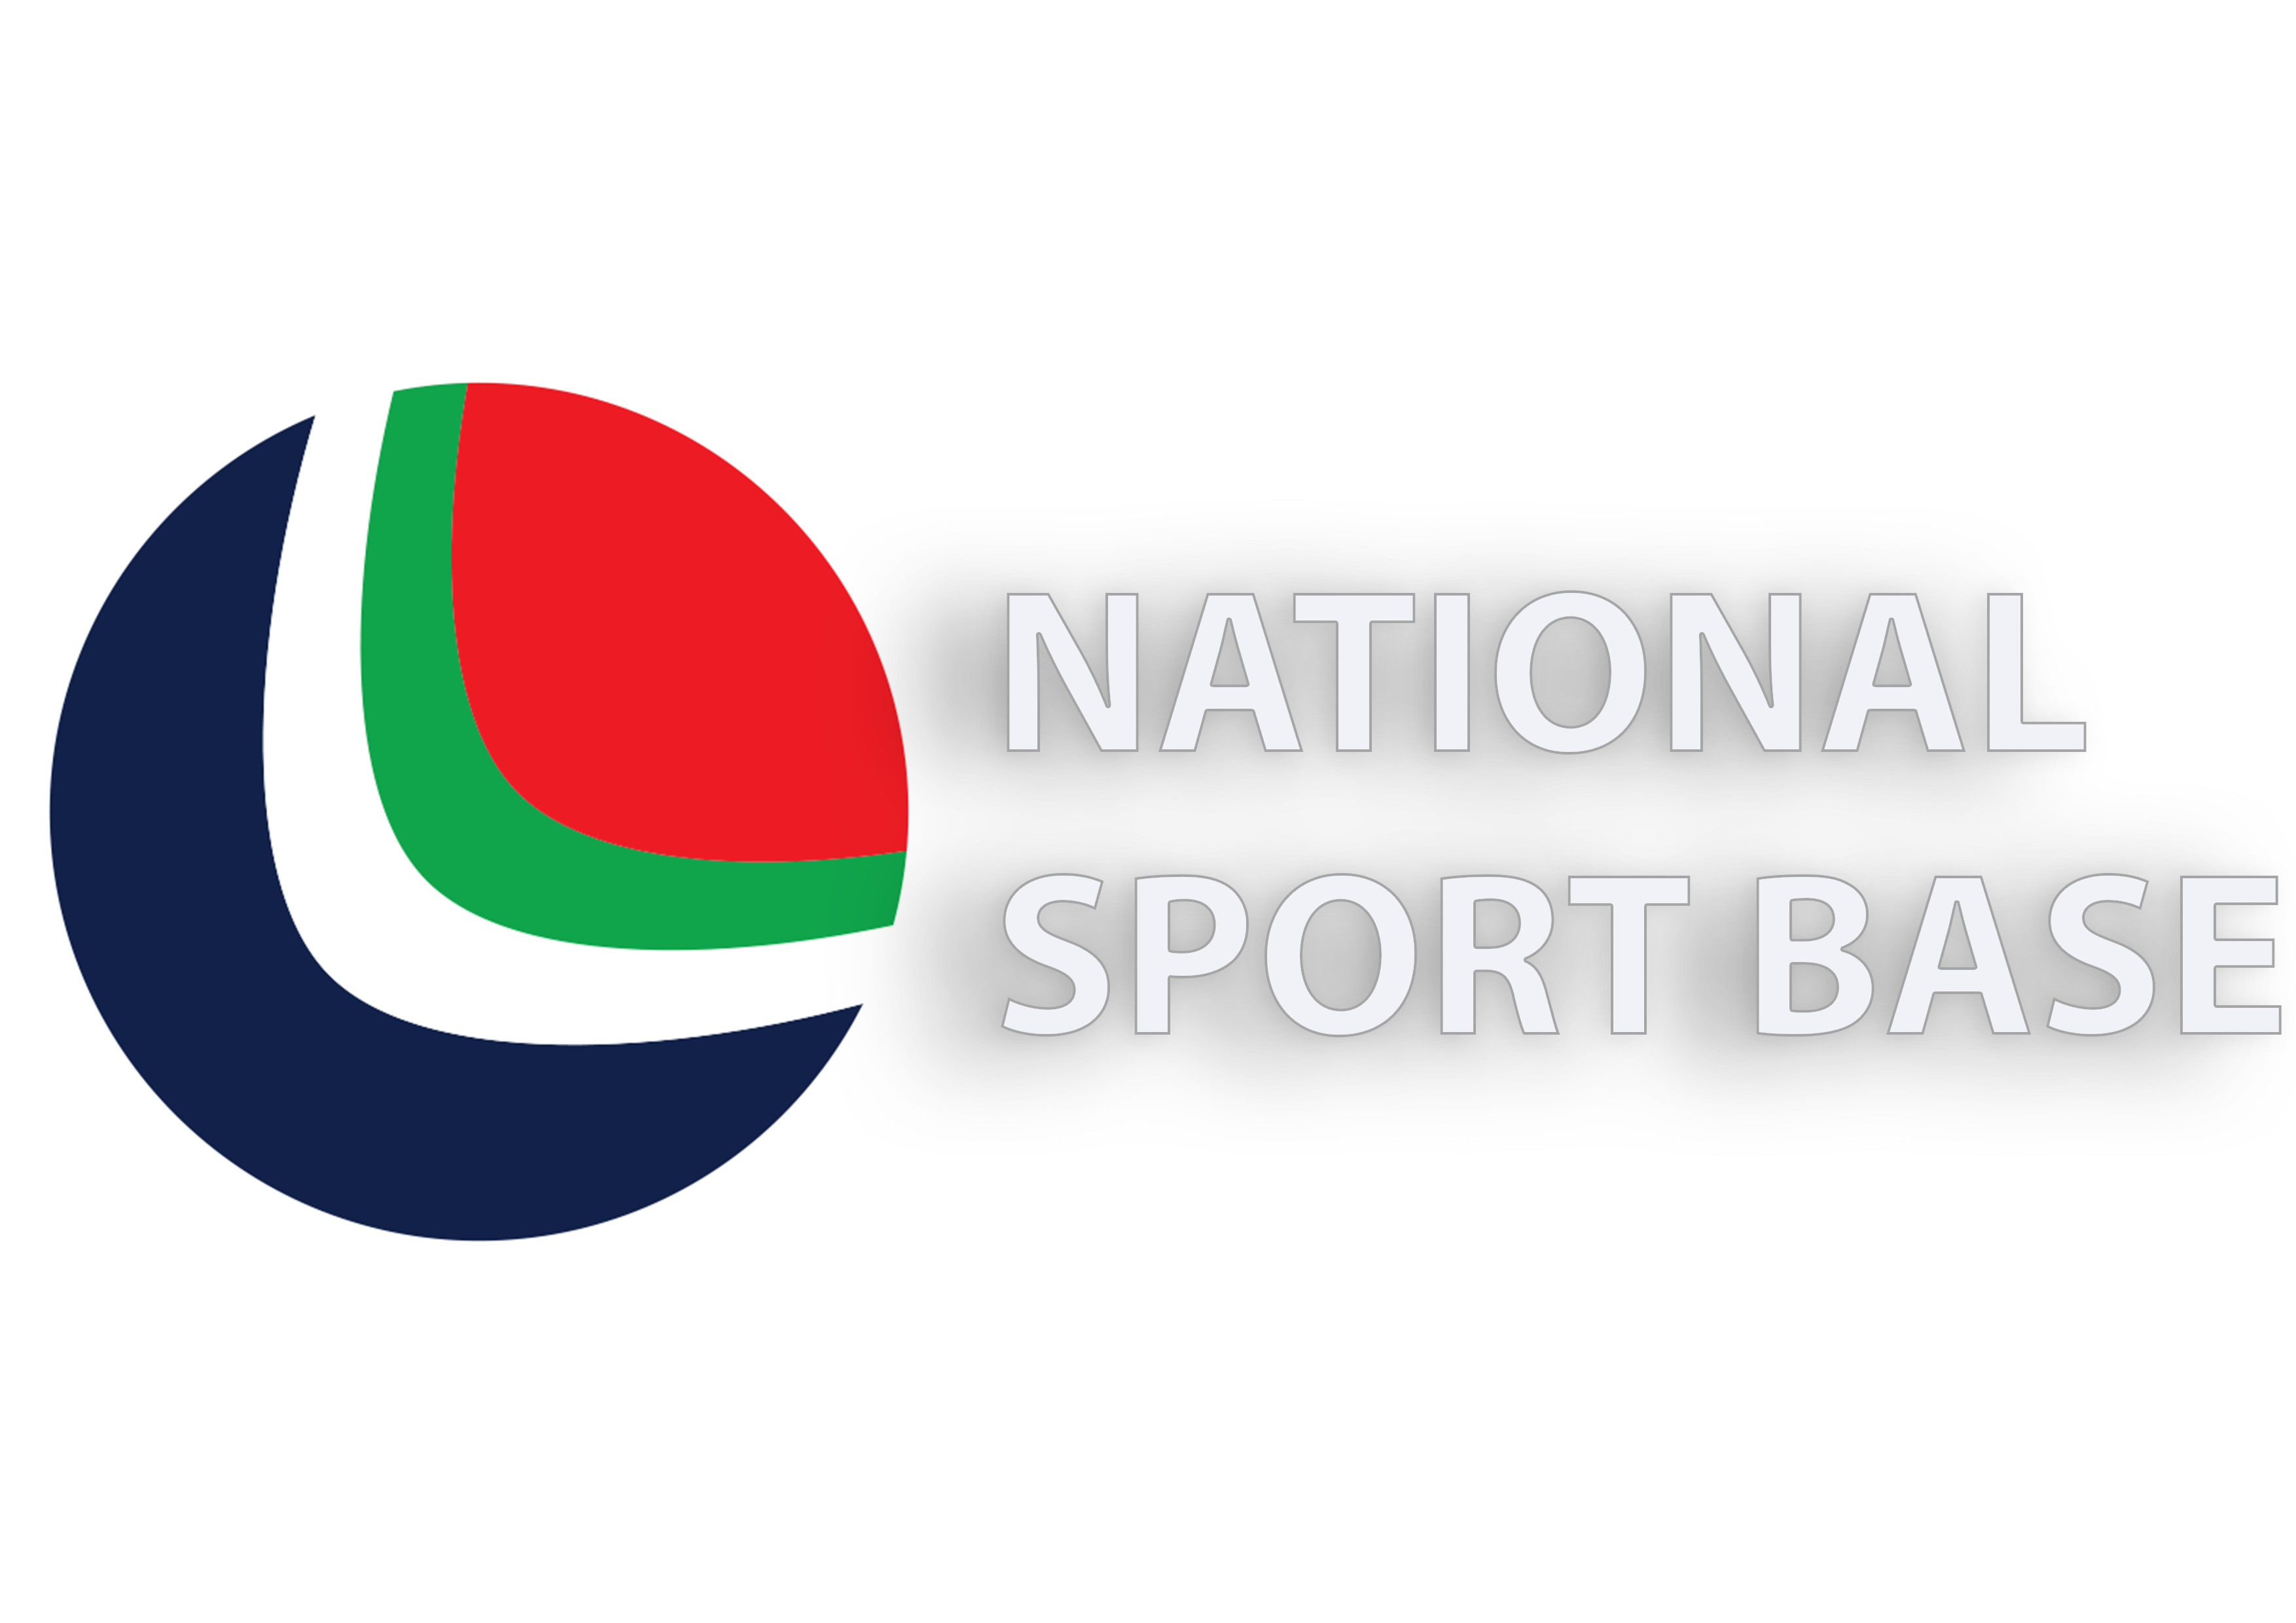 National Sport Base